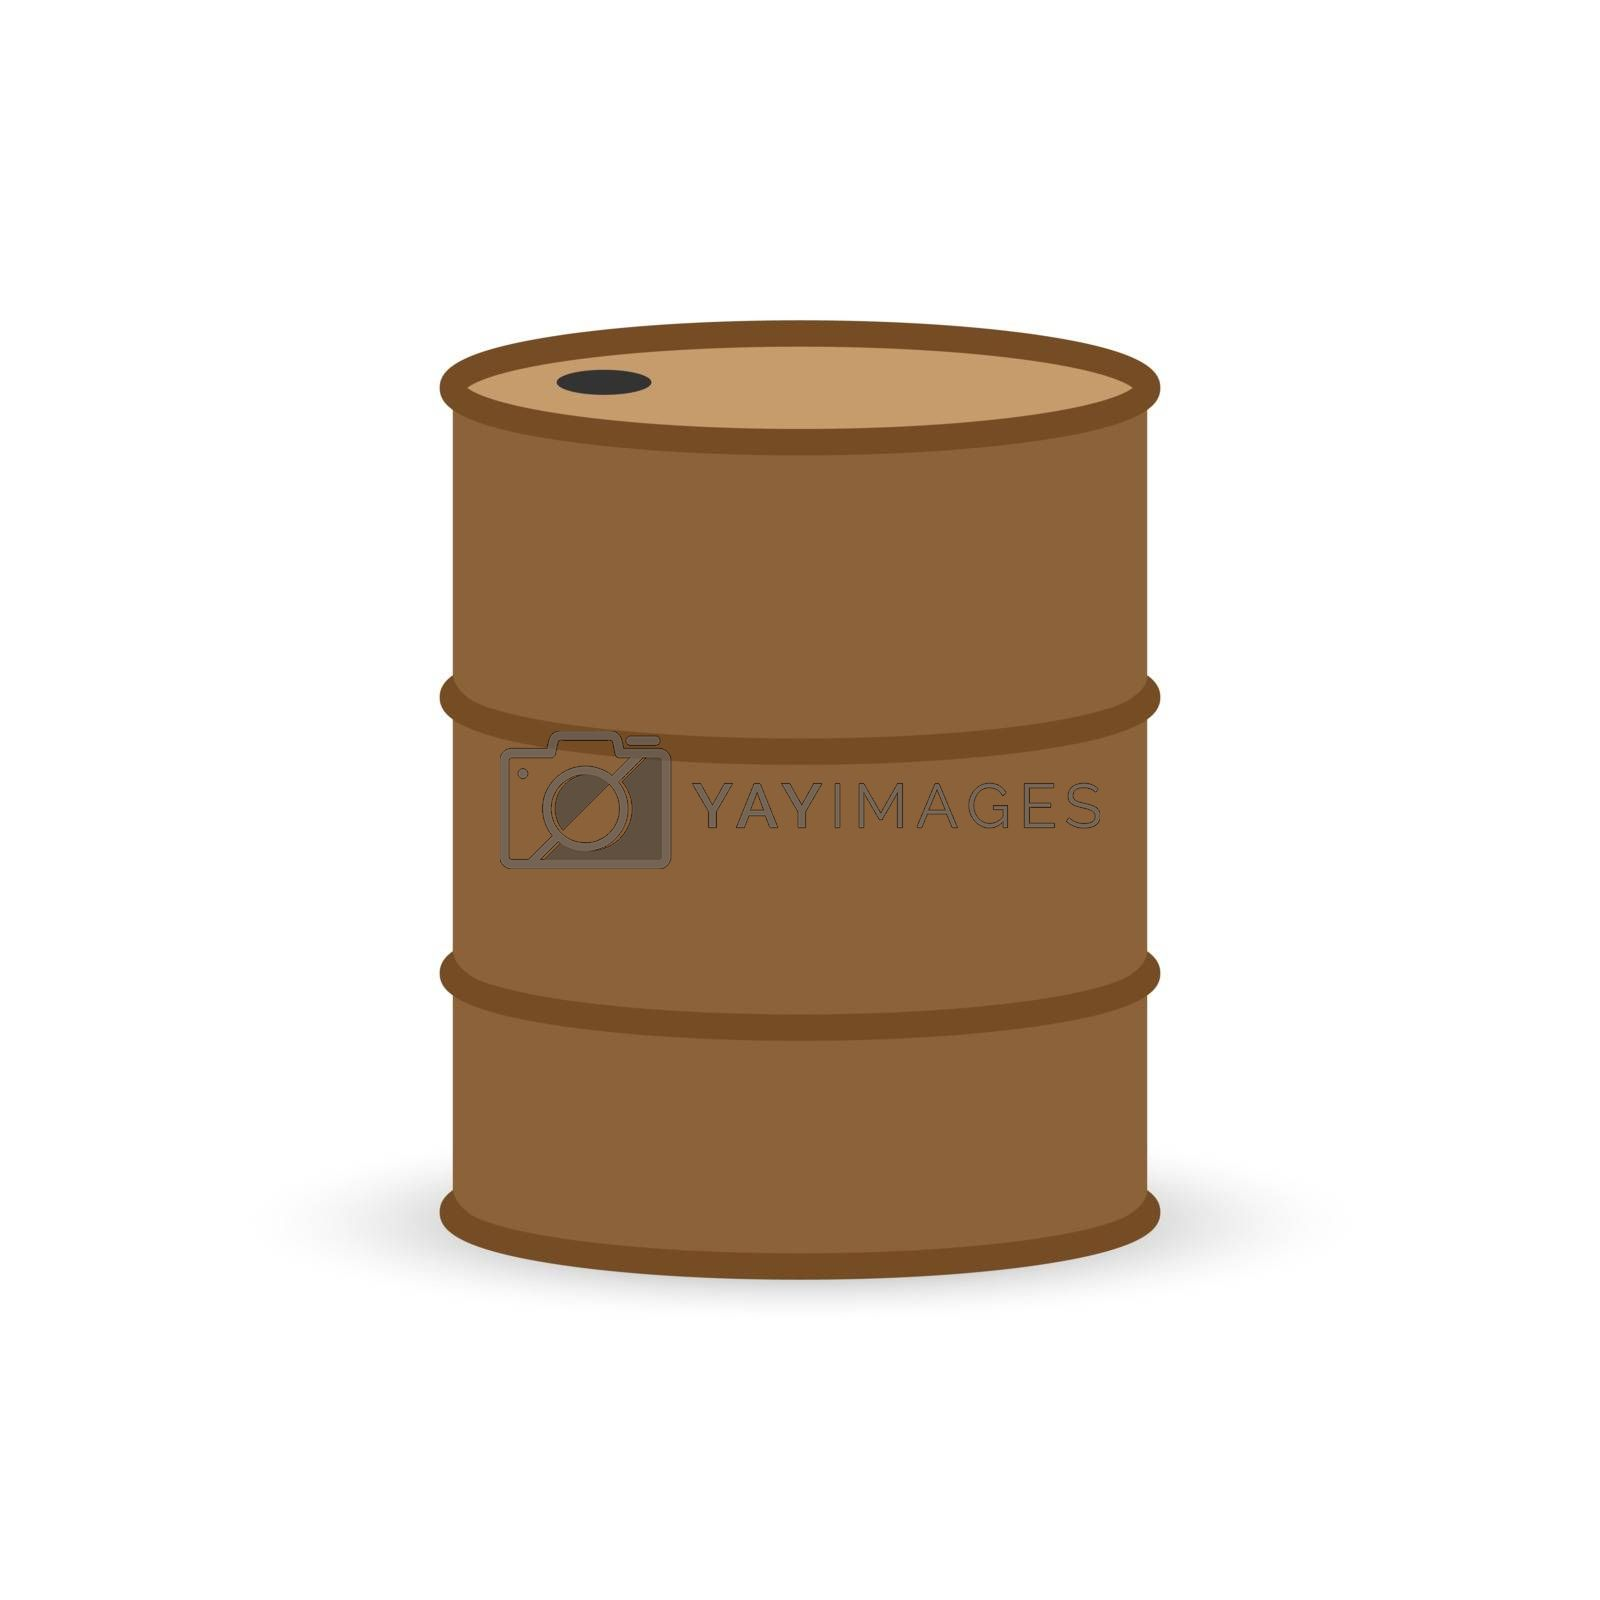 Metal barrel for storage and transportation of oil products, simple icon